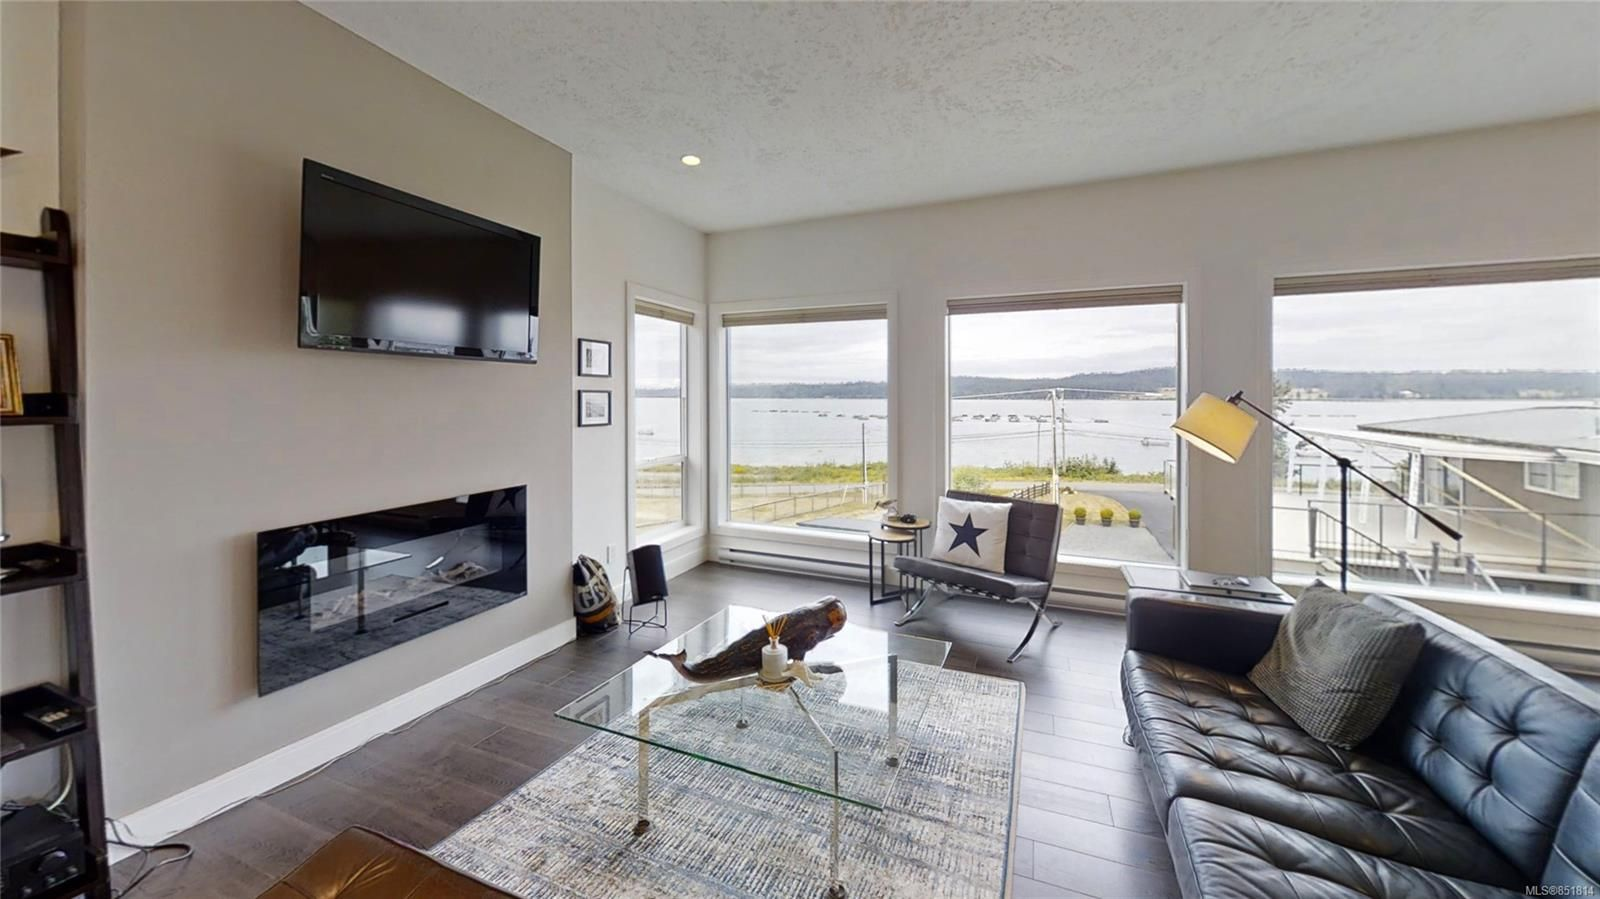 Photo 44: Photos: 191 Muschamp Rd in : CV Union Bay/Fanny Bay House for sale (Comox Valley)  : MLS®# 851814